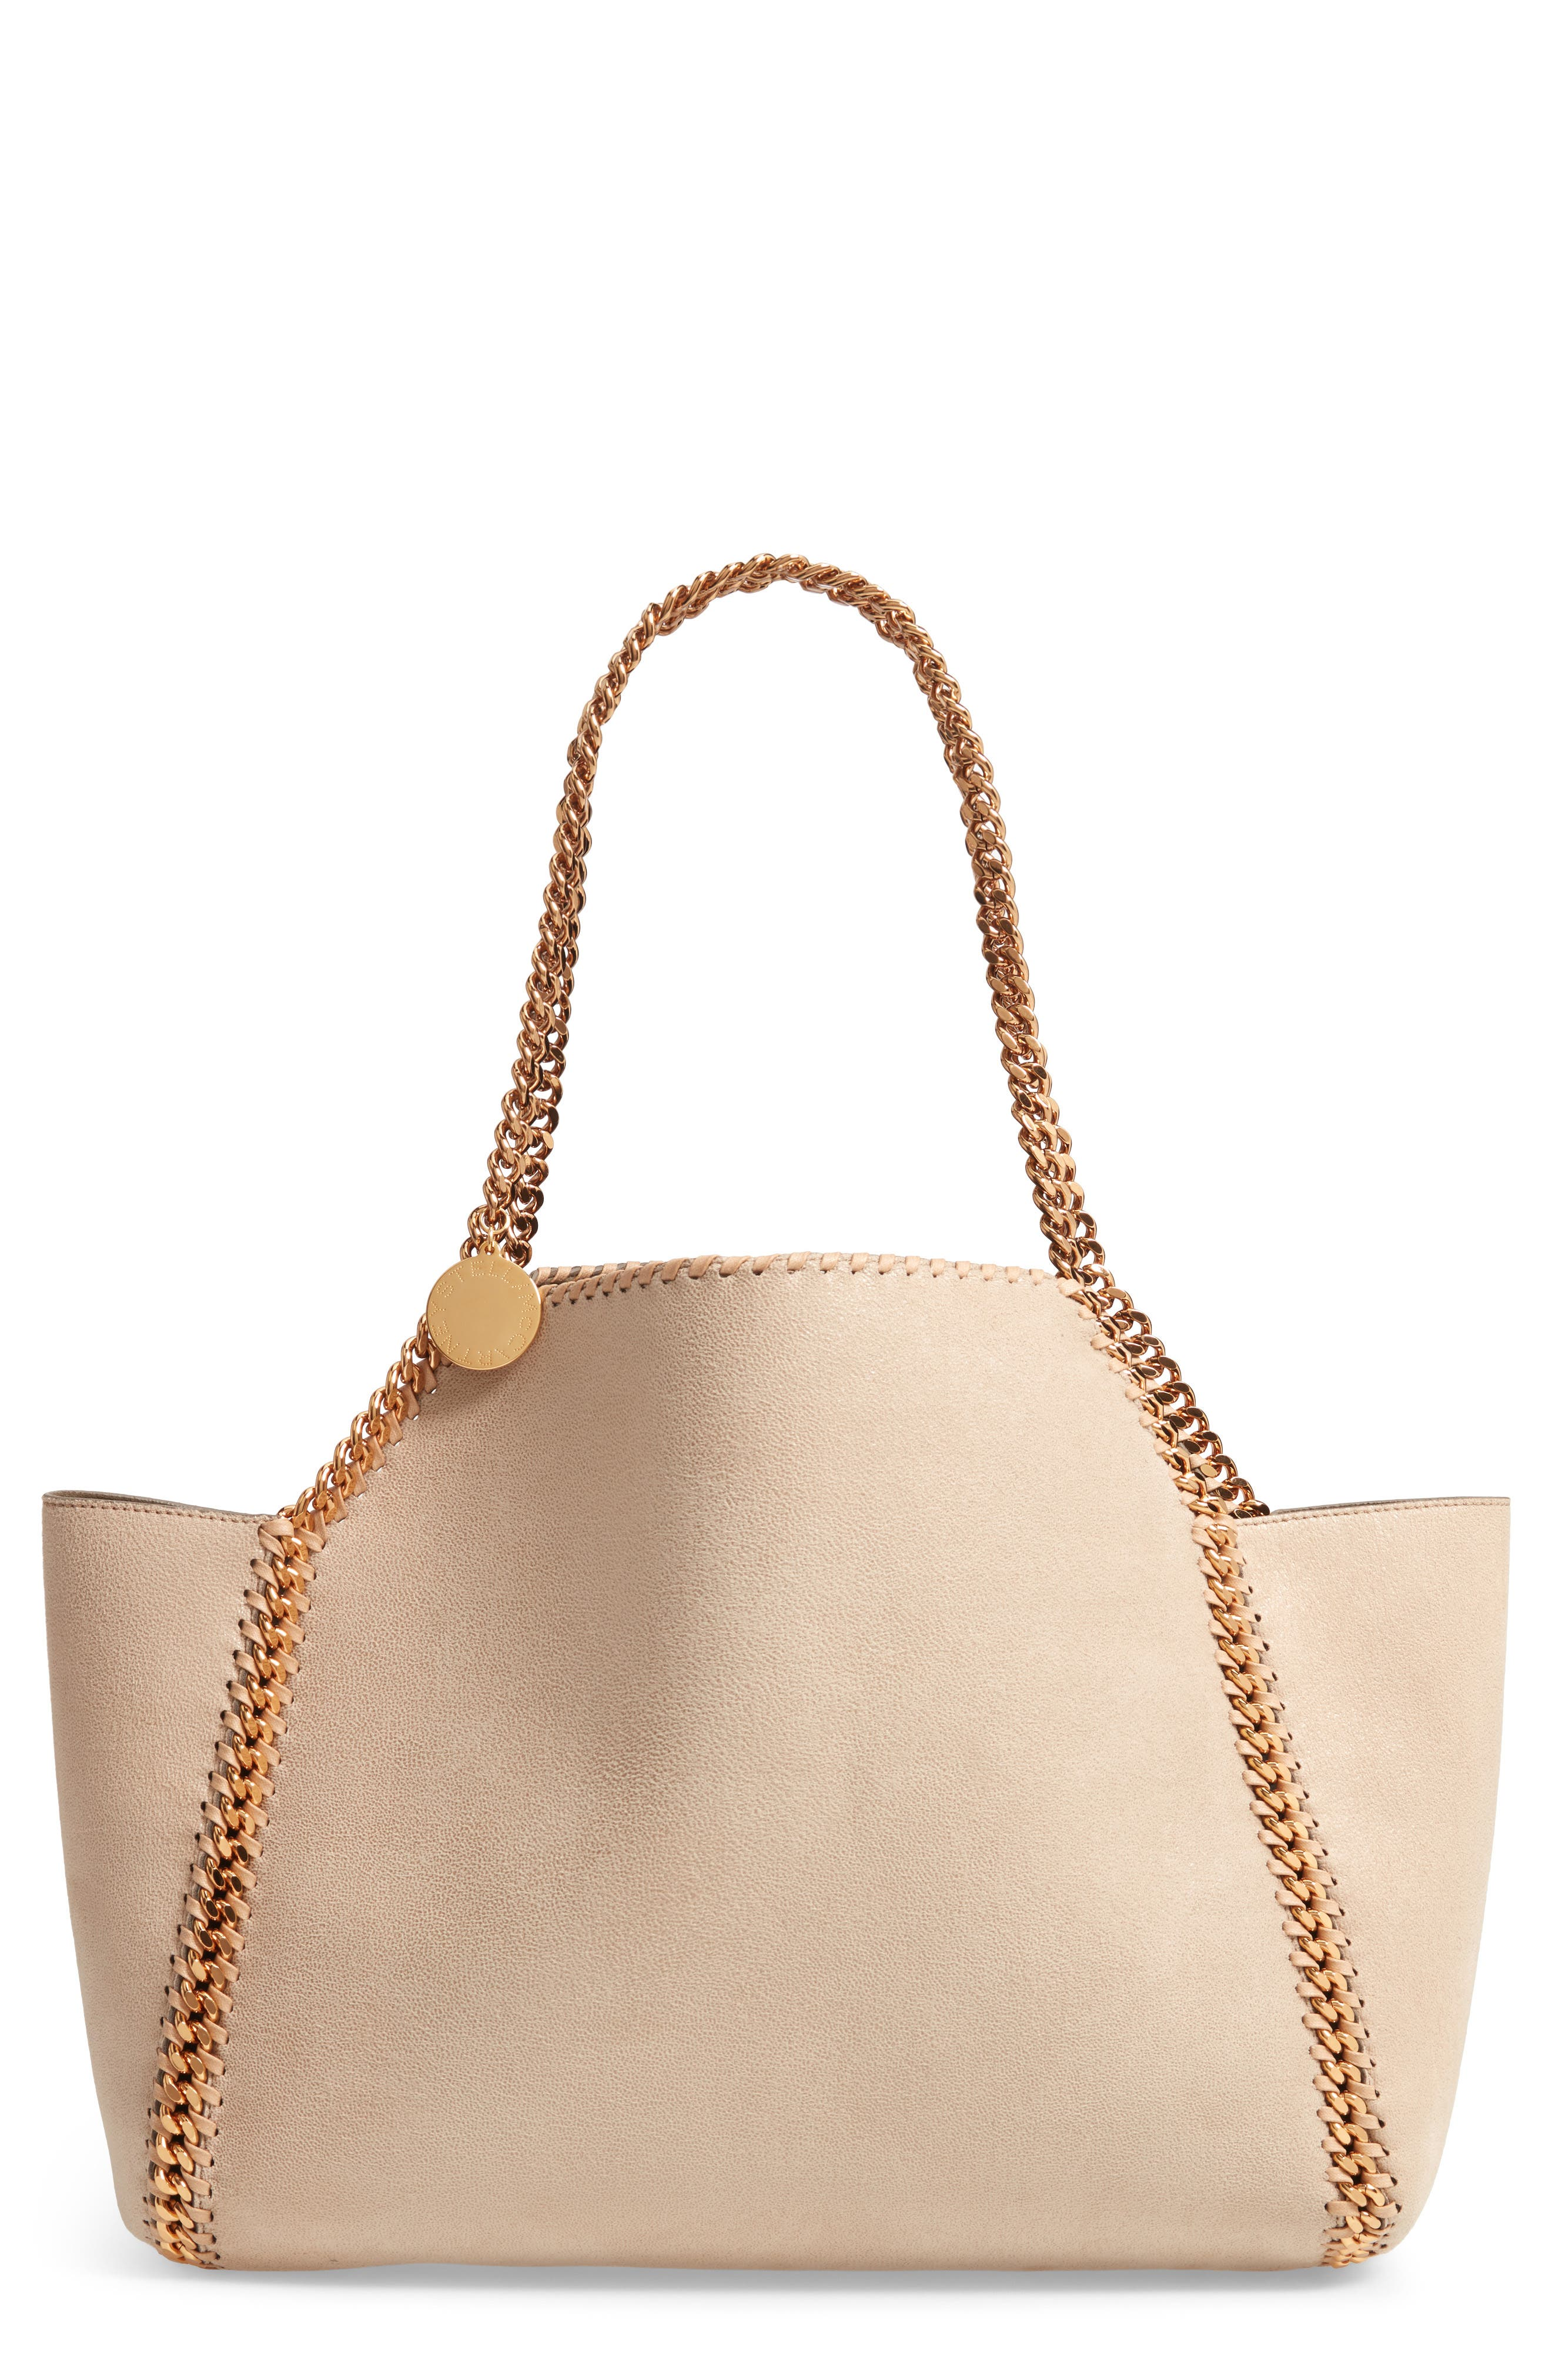 Shaggy Deer Reversible Faux Leather Tote,                             Main thumbnail 1, color,                             CLOTTED CREAM